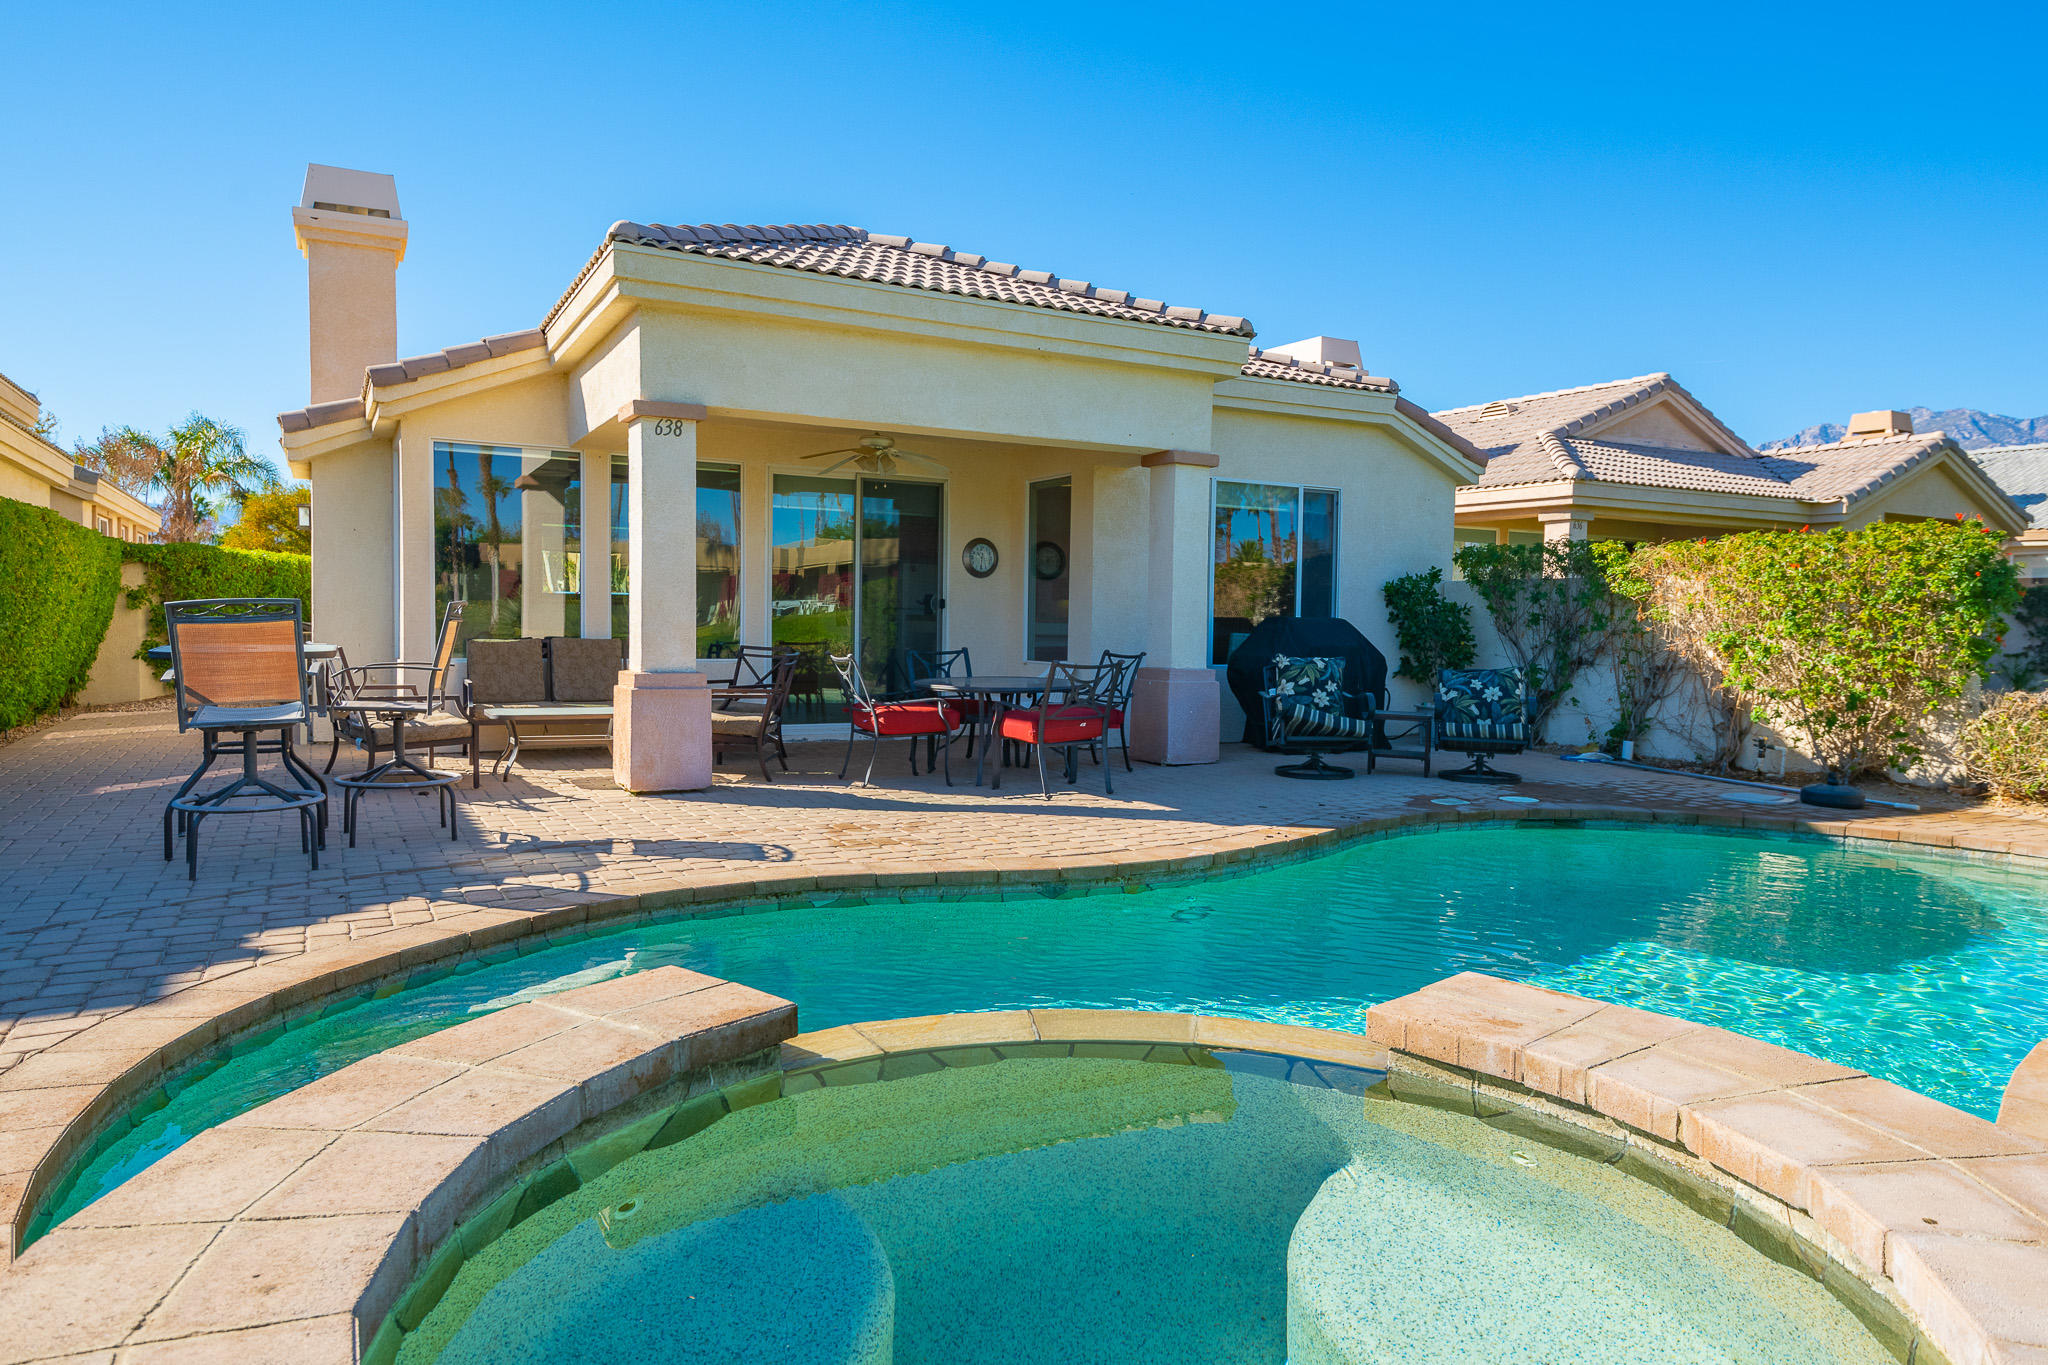 LAKEFRONT POOL VILLA!  One of the most desired locations within Desert Princess Palm Springs.  Your own private pool and spa with a lake and golf course frontage and custom cobblestone patio.  Overlooks the demanding Cielo #8 tee shot across the lake.   Absolutely stunning!  Well cared for and turnkey ready to move in, or use for vacation rental income at $5500 per month in season.  Also eligible for a short term vacation rental permit (STVR).  Contact the City of Cathedral City for more details.  Incredible pool deck with golf course view.  HOA includes Country Club membership, tennis, spa, fitness center, racquetball and more. 27 holes of PGA championship golf.  Centrally located between downtown Palm Springs, Palm Desert and under 2 hours from anywhere in Southern California.  Virtual Showings via Zoom or Facebook Live, or come by in person for a showing.